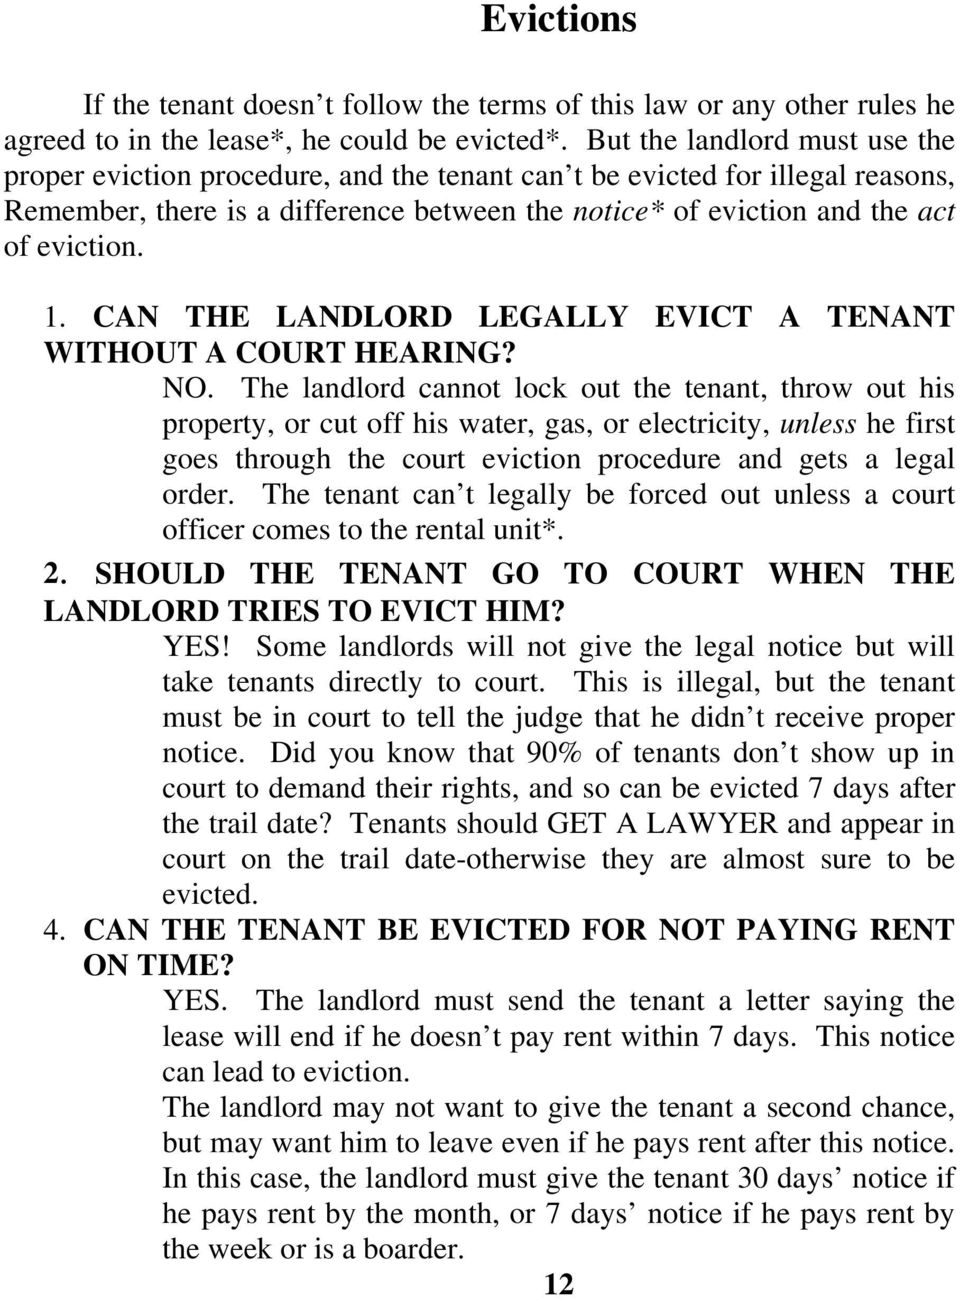 1. CAN THE LANDLORD LEGALLY EVICT A TENANT WITHOUT A COURT HEARING? NO.